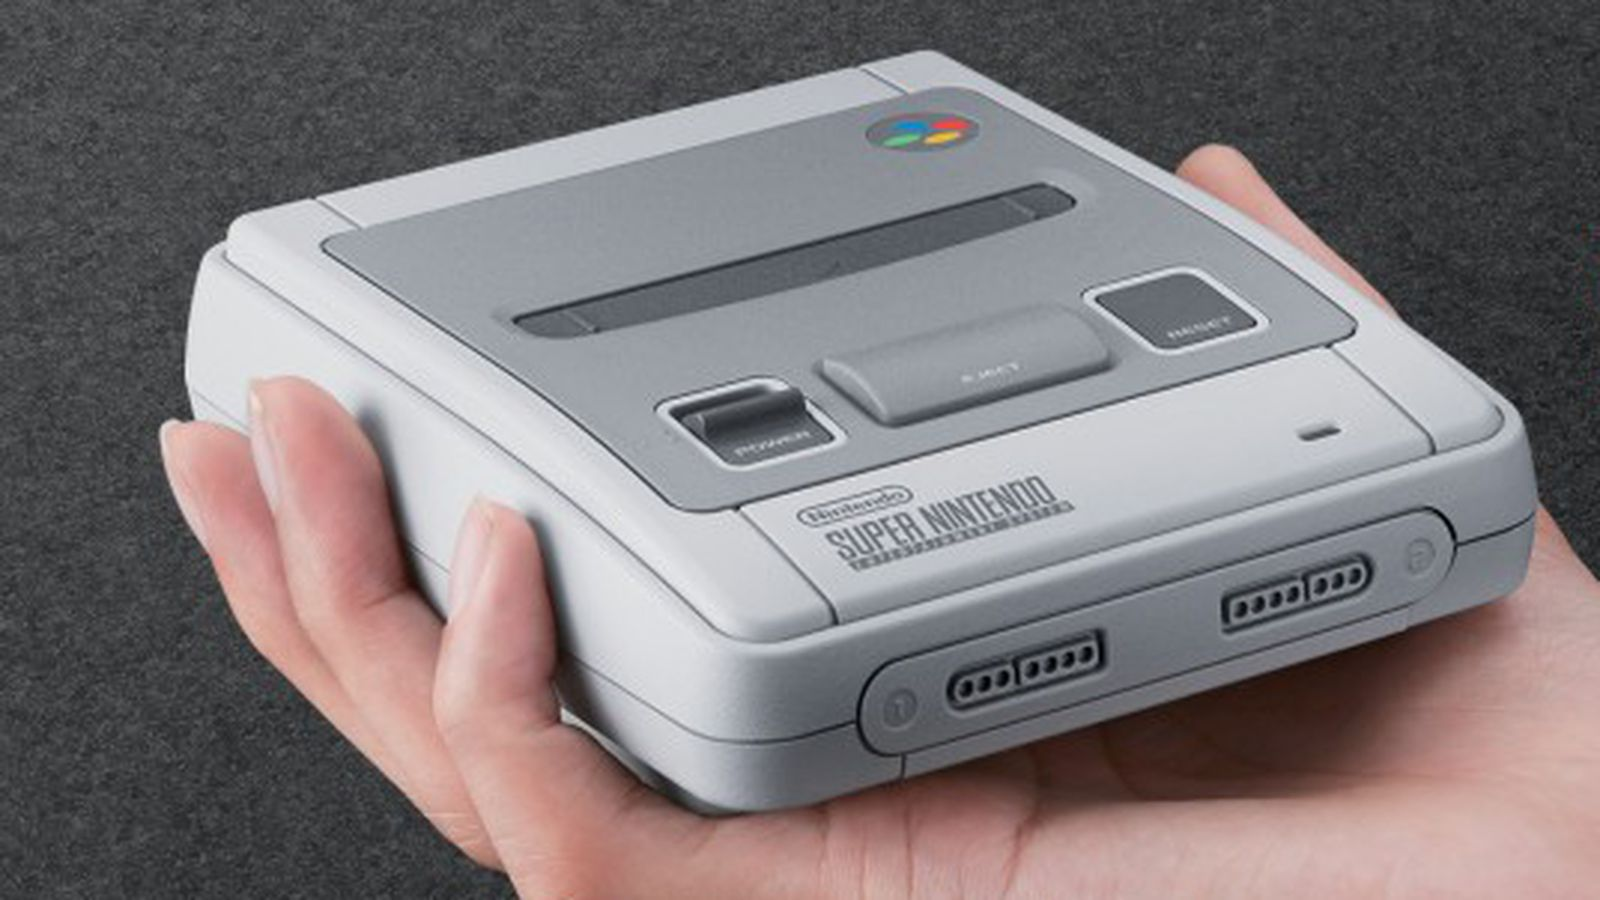 The European SNES Classic Edition is super cute